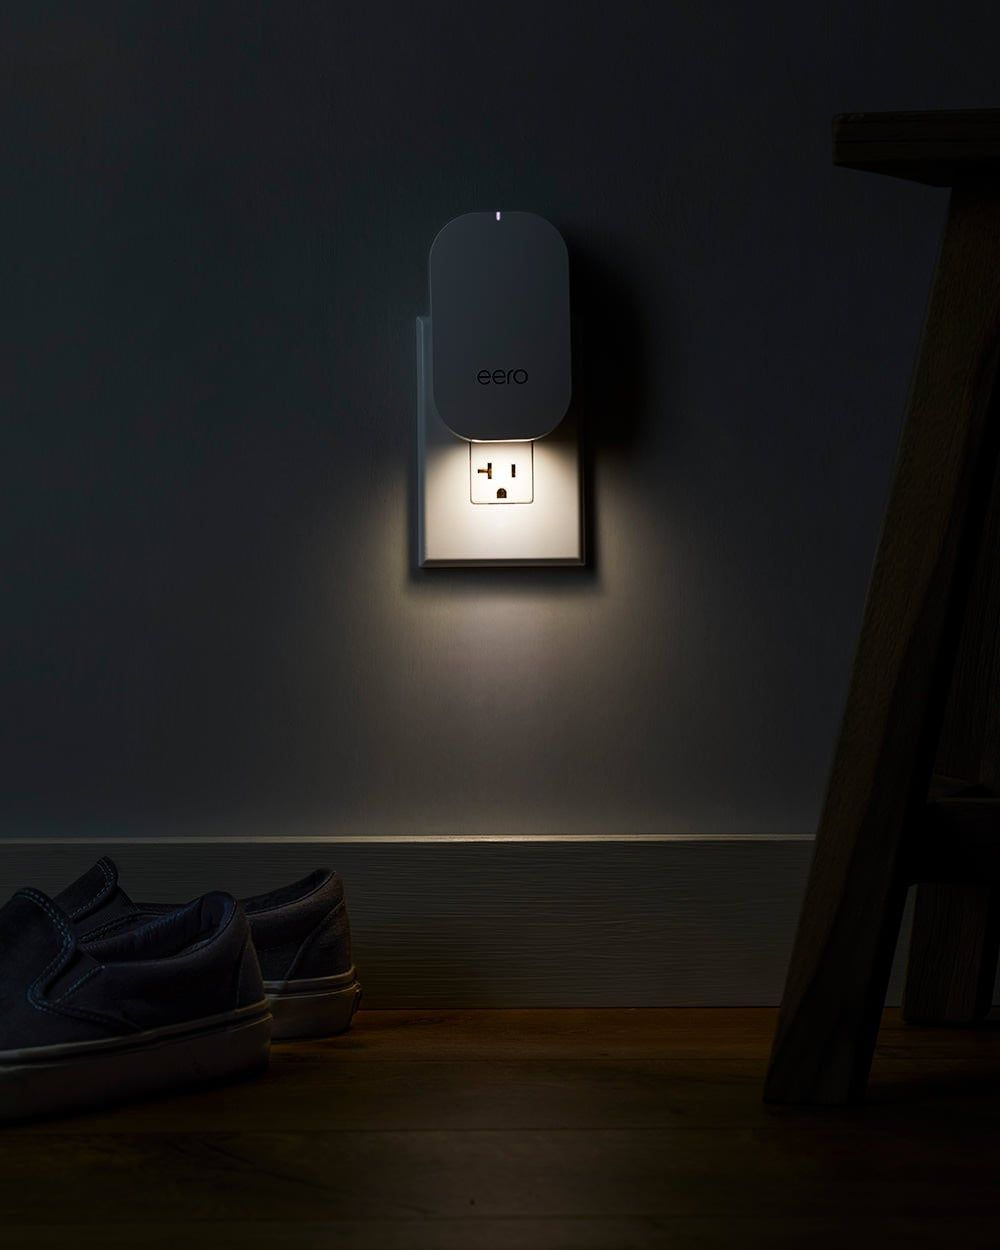 Eero Beacon With Nightlight On Night Light Light Wall Lights